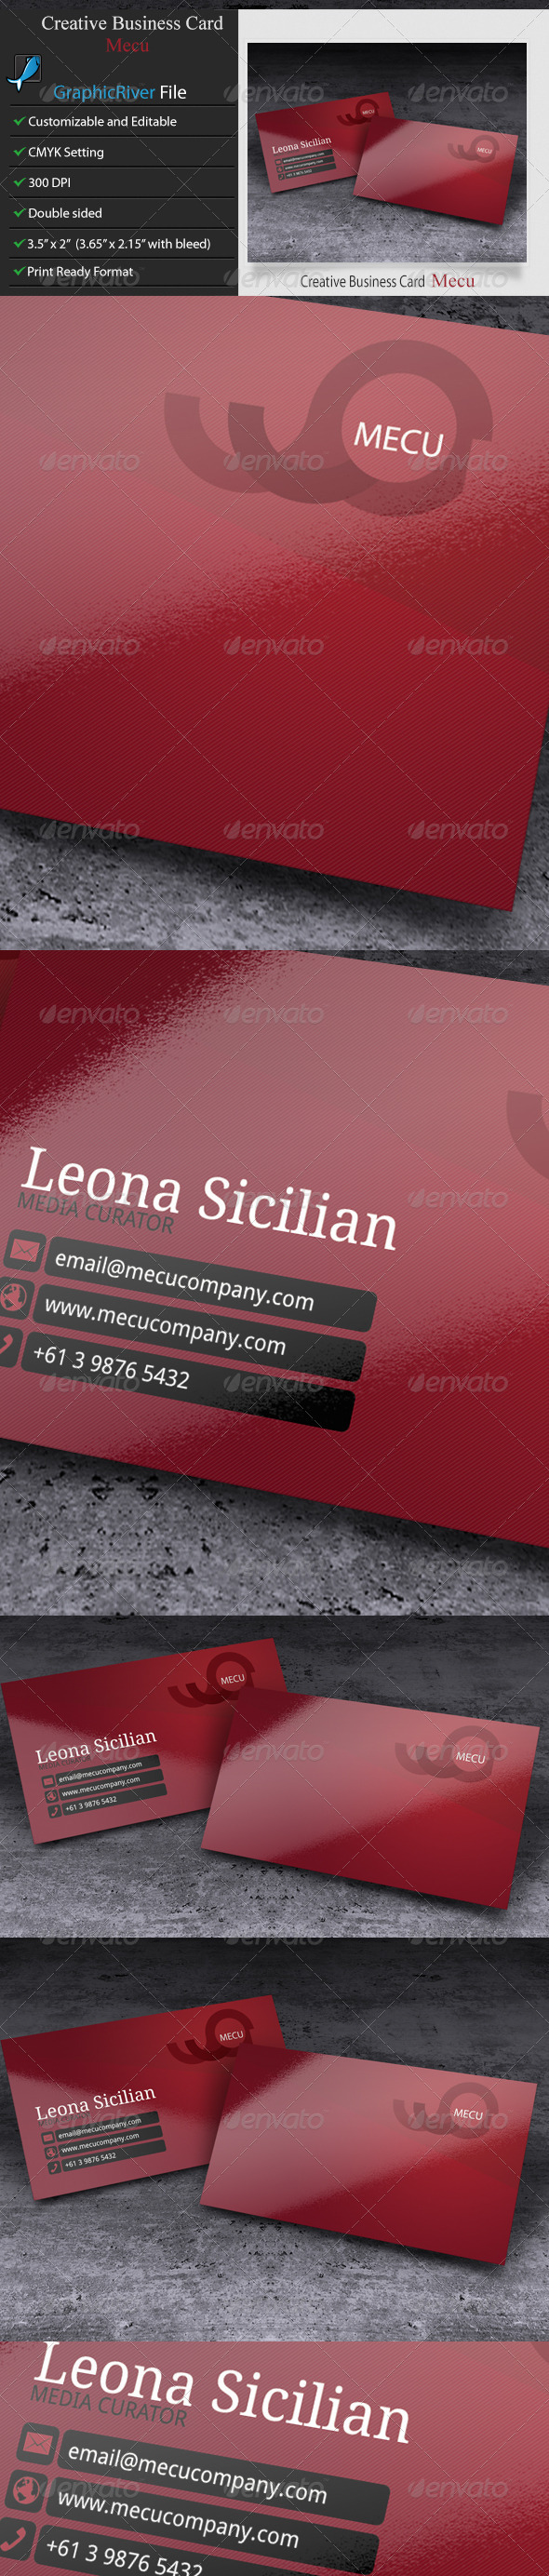 Creative Business Card Mecu